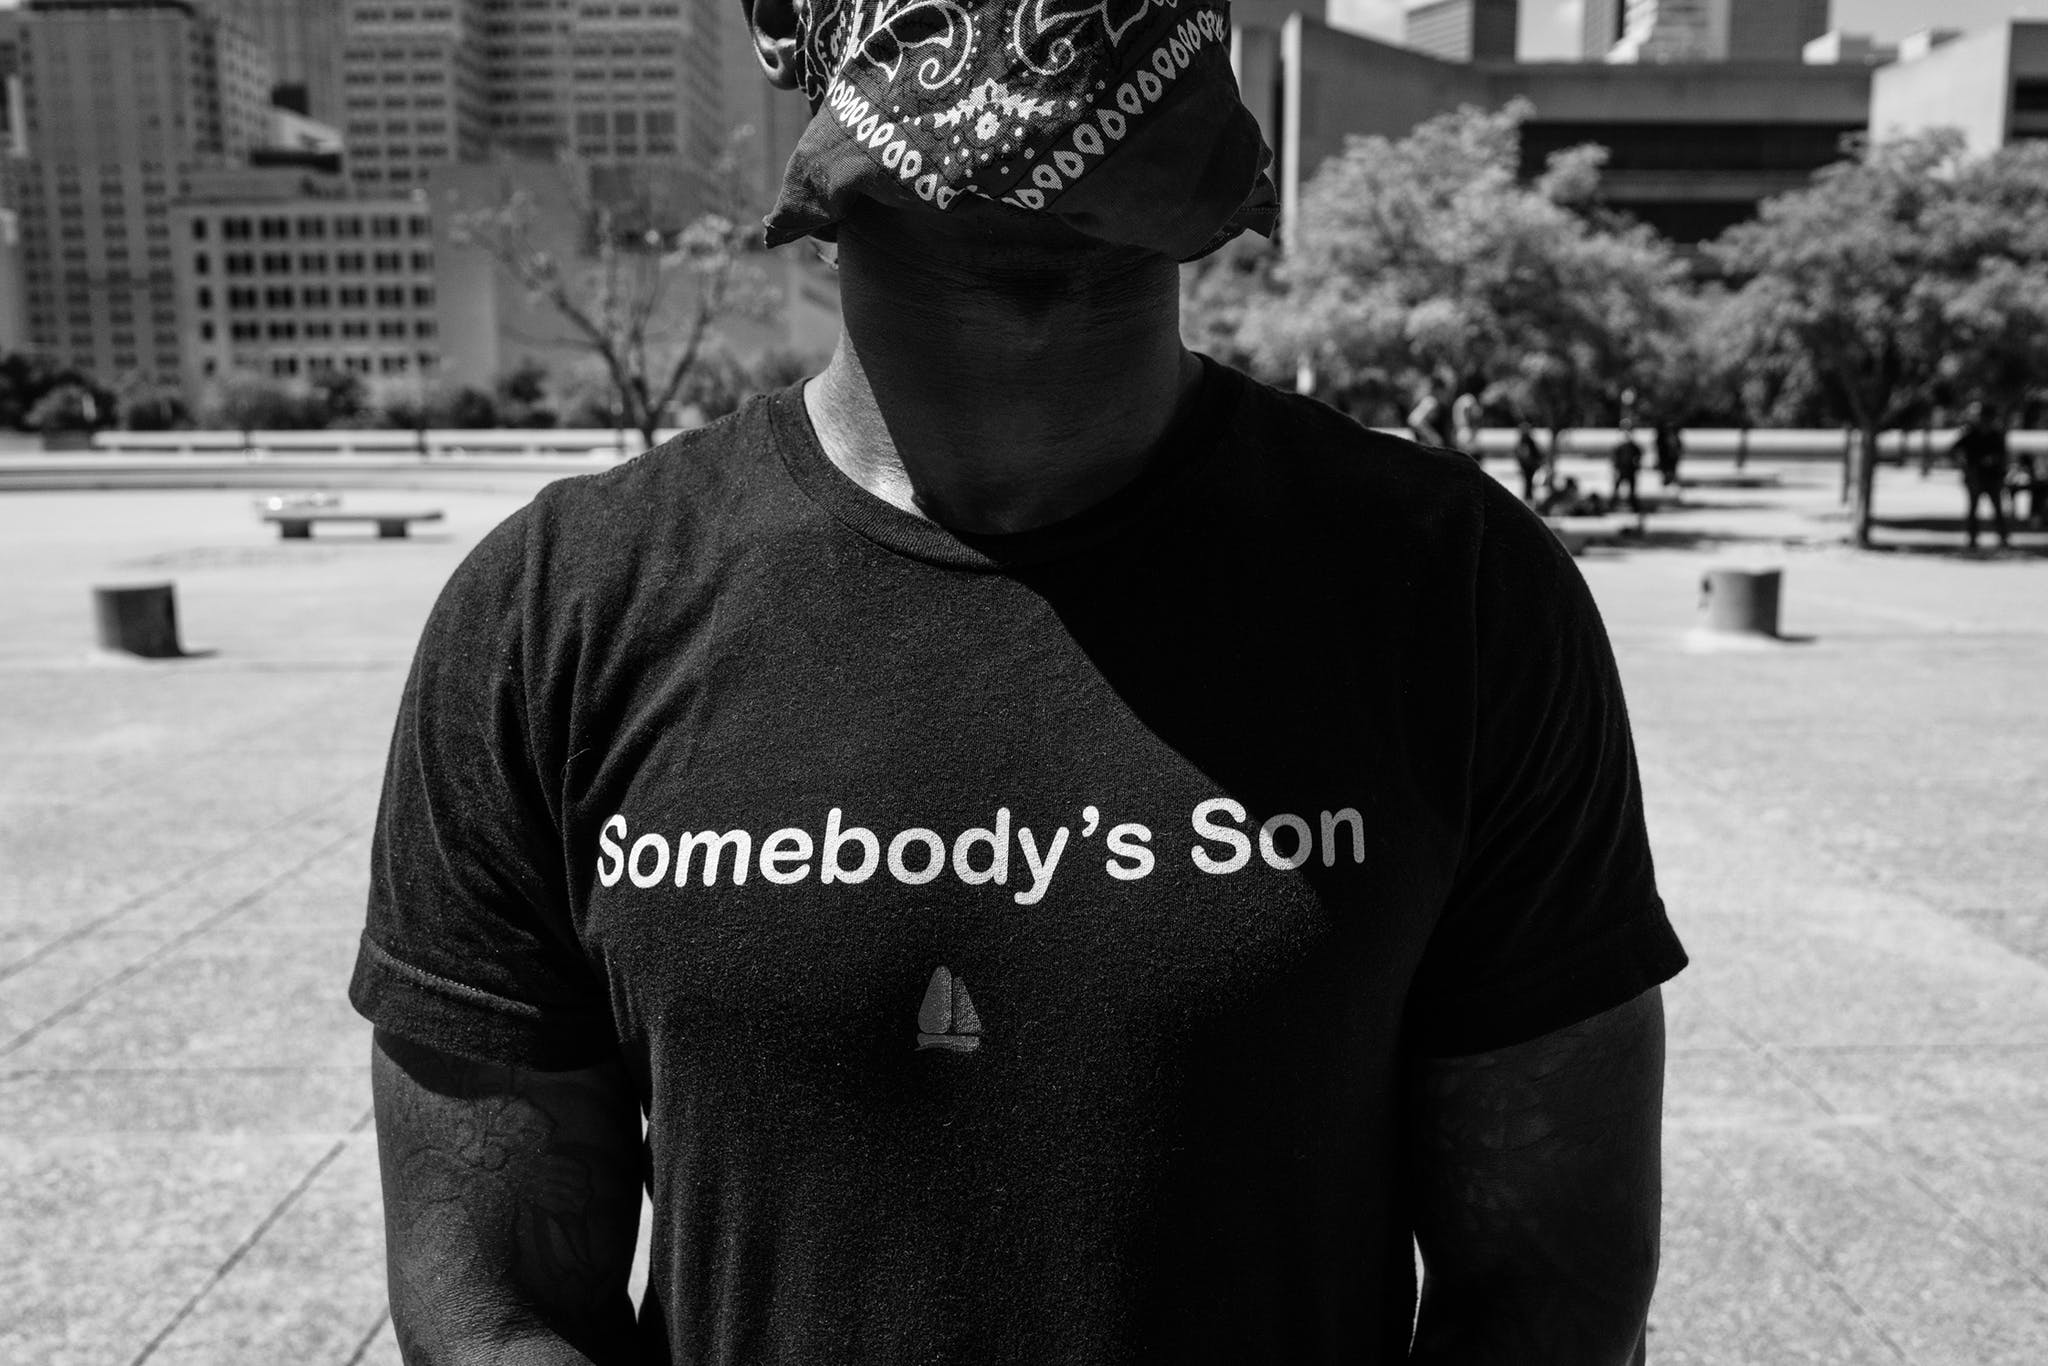 A young man named Sammy B. attends the protest gathering at Dallas City Hall on June 3, 2020.